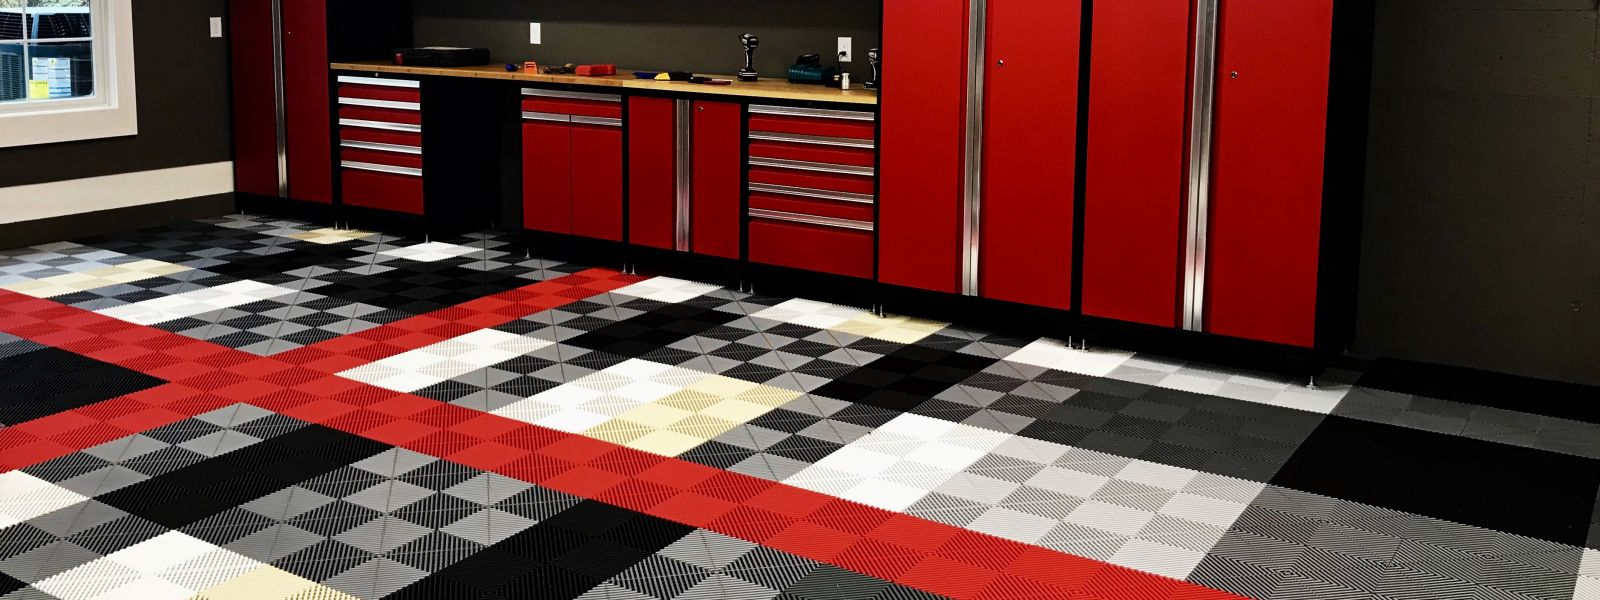 a red and white checkered floor